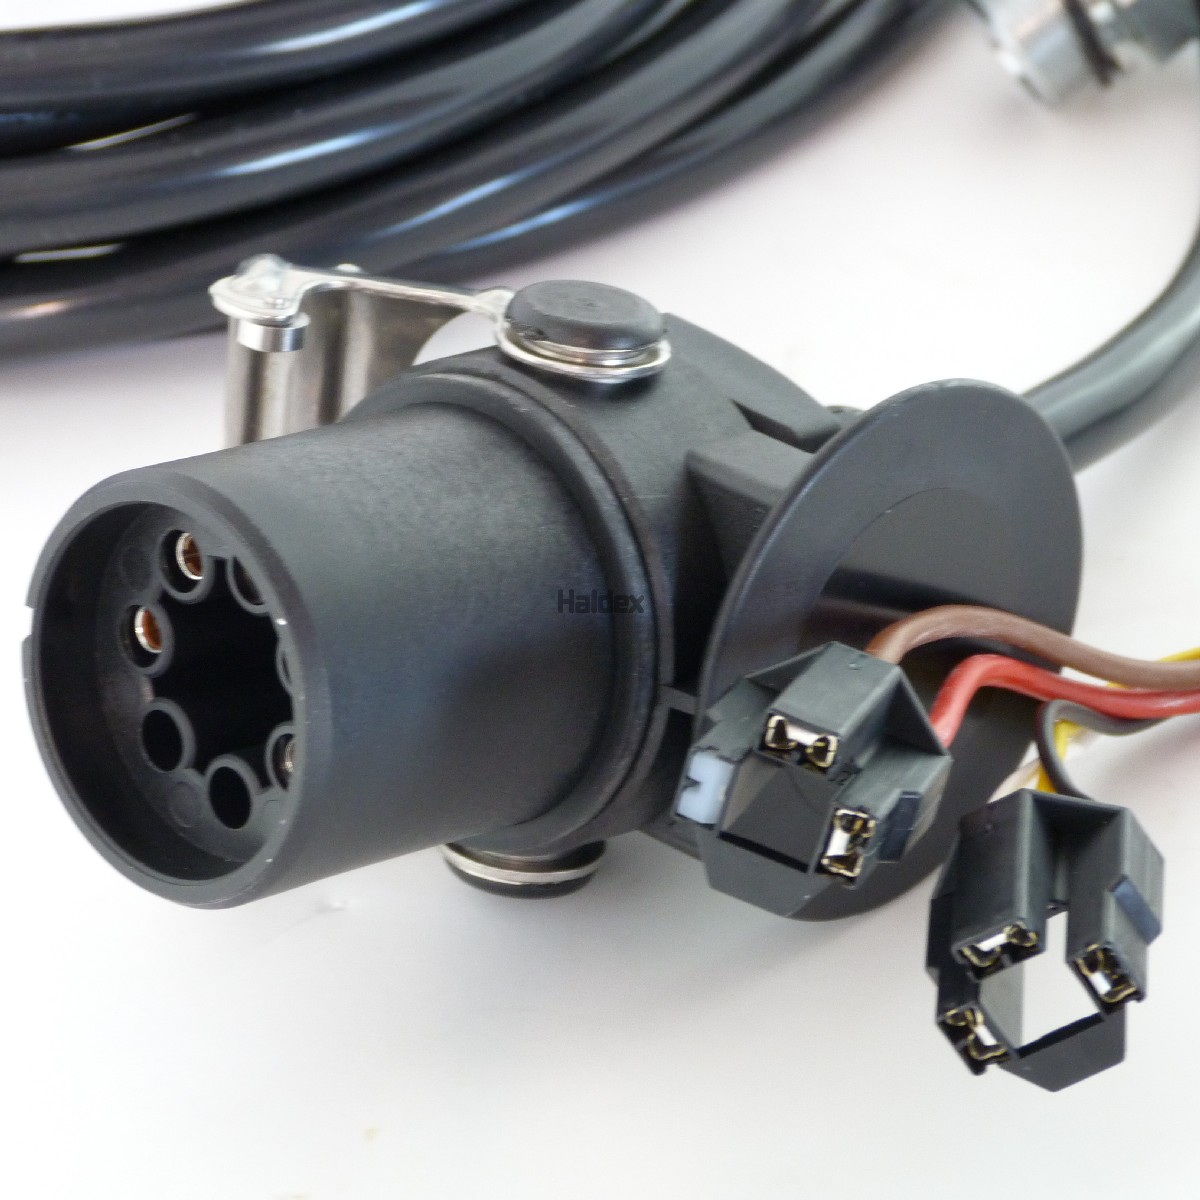 364375011 - Cables  Looms  Plugs  U0026 Sockets